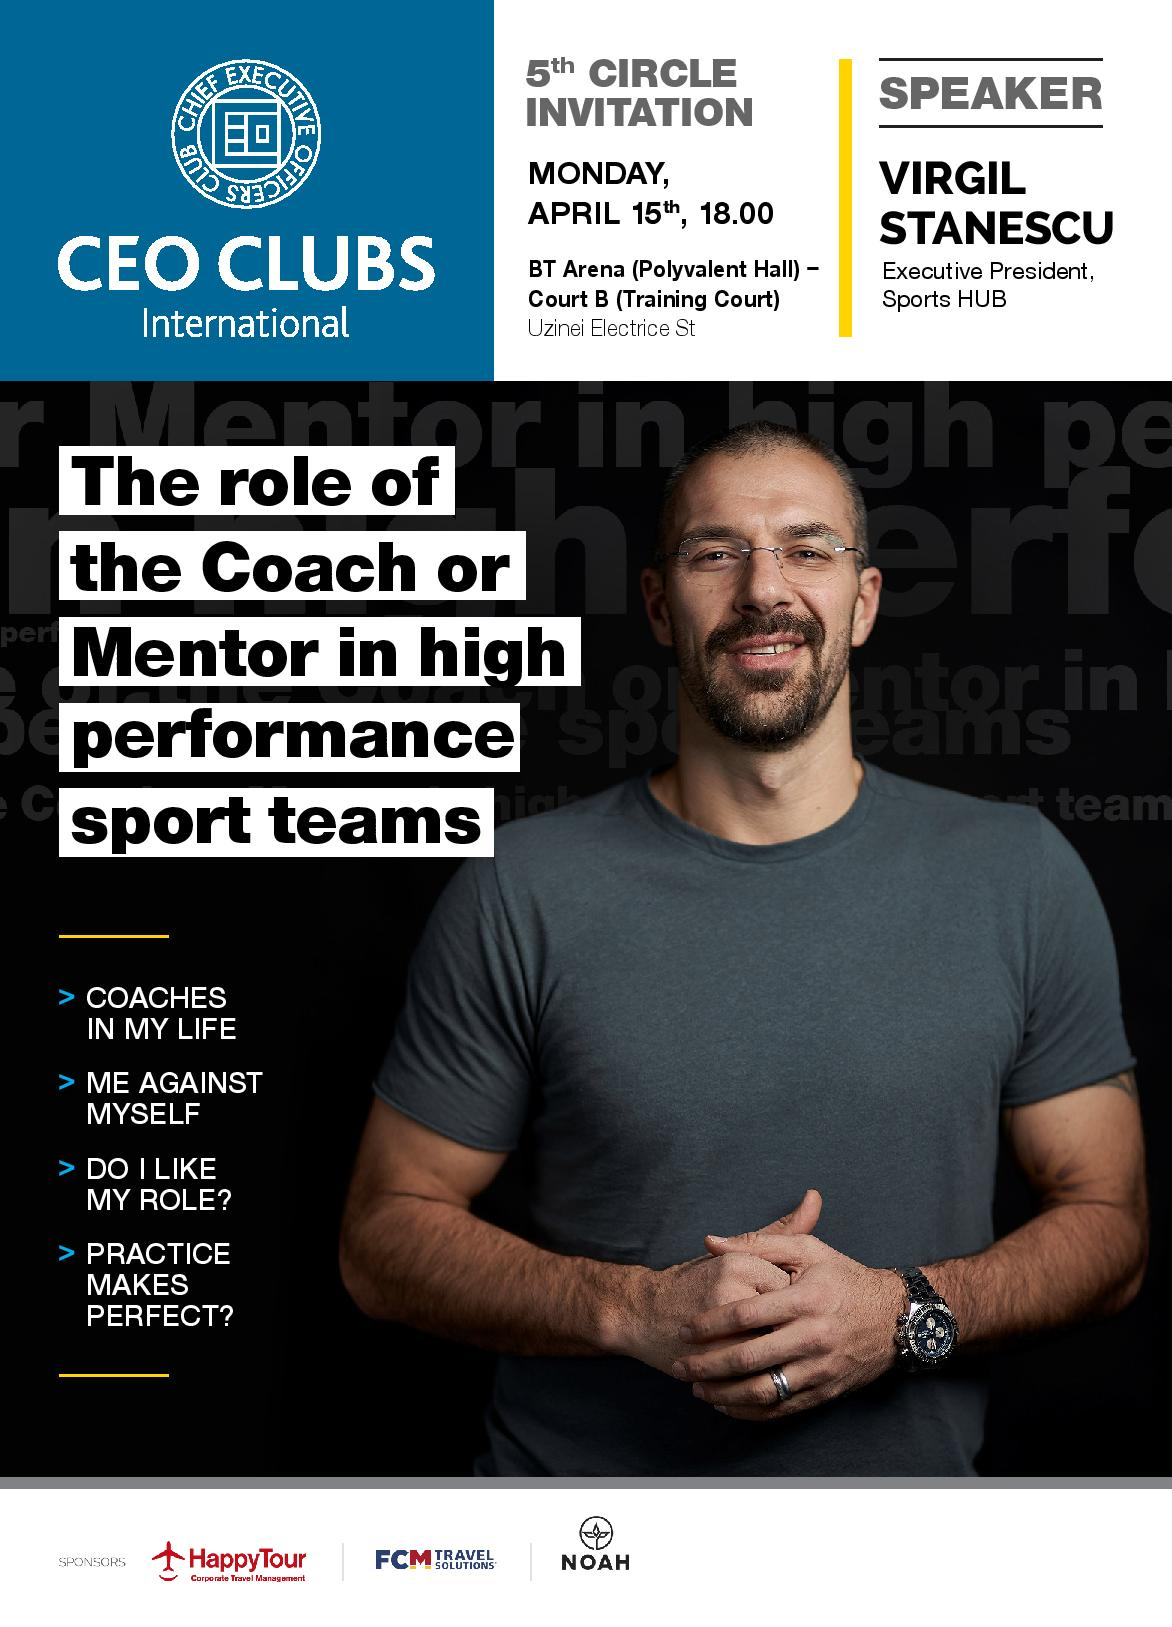 5th Circle: The role of the Coach or Mentor in high performance sport teams